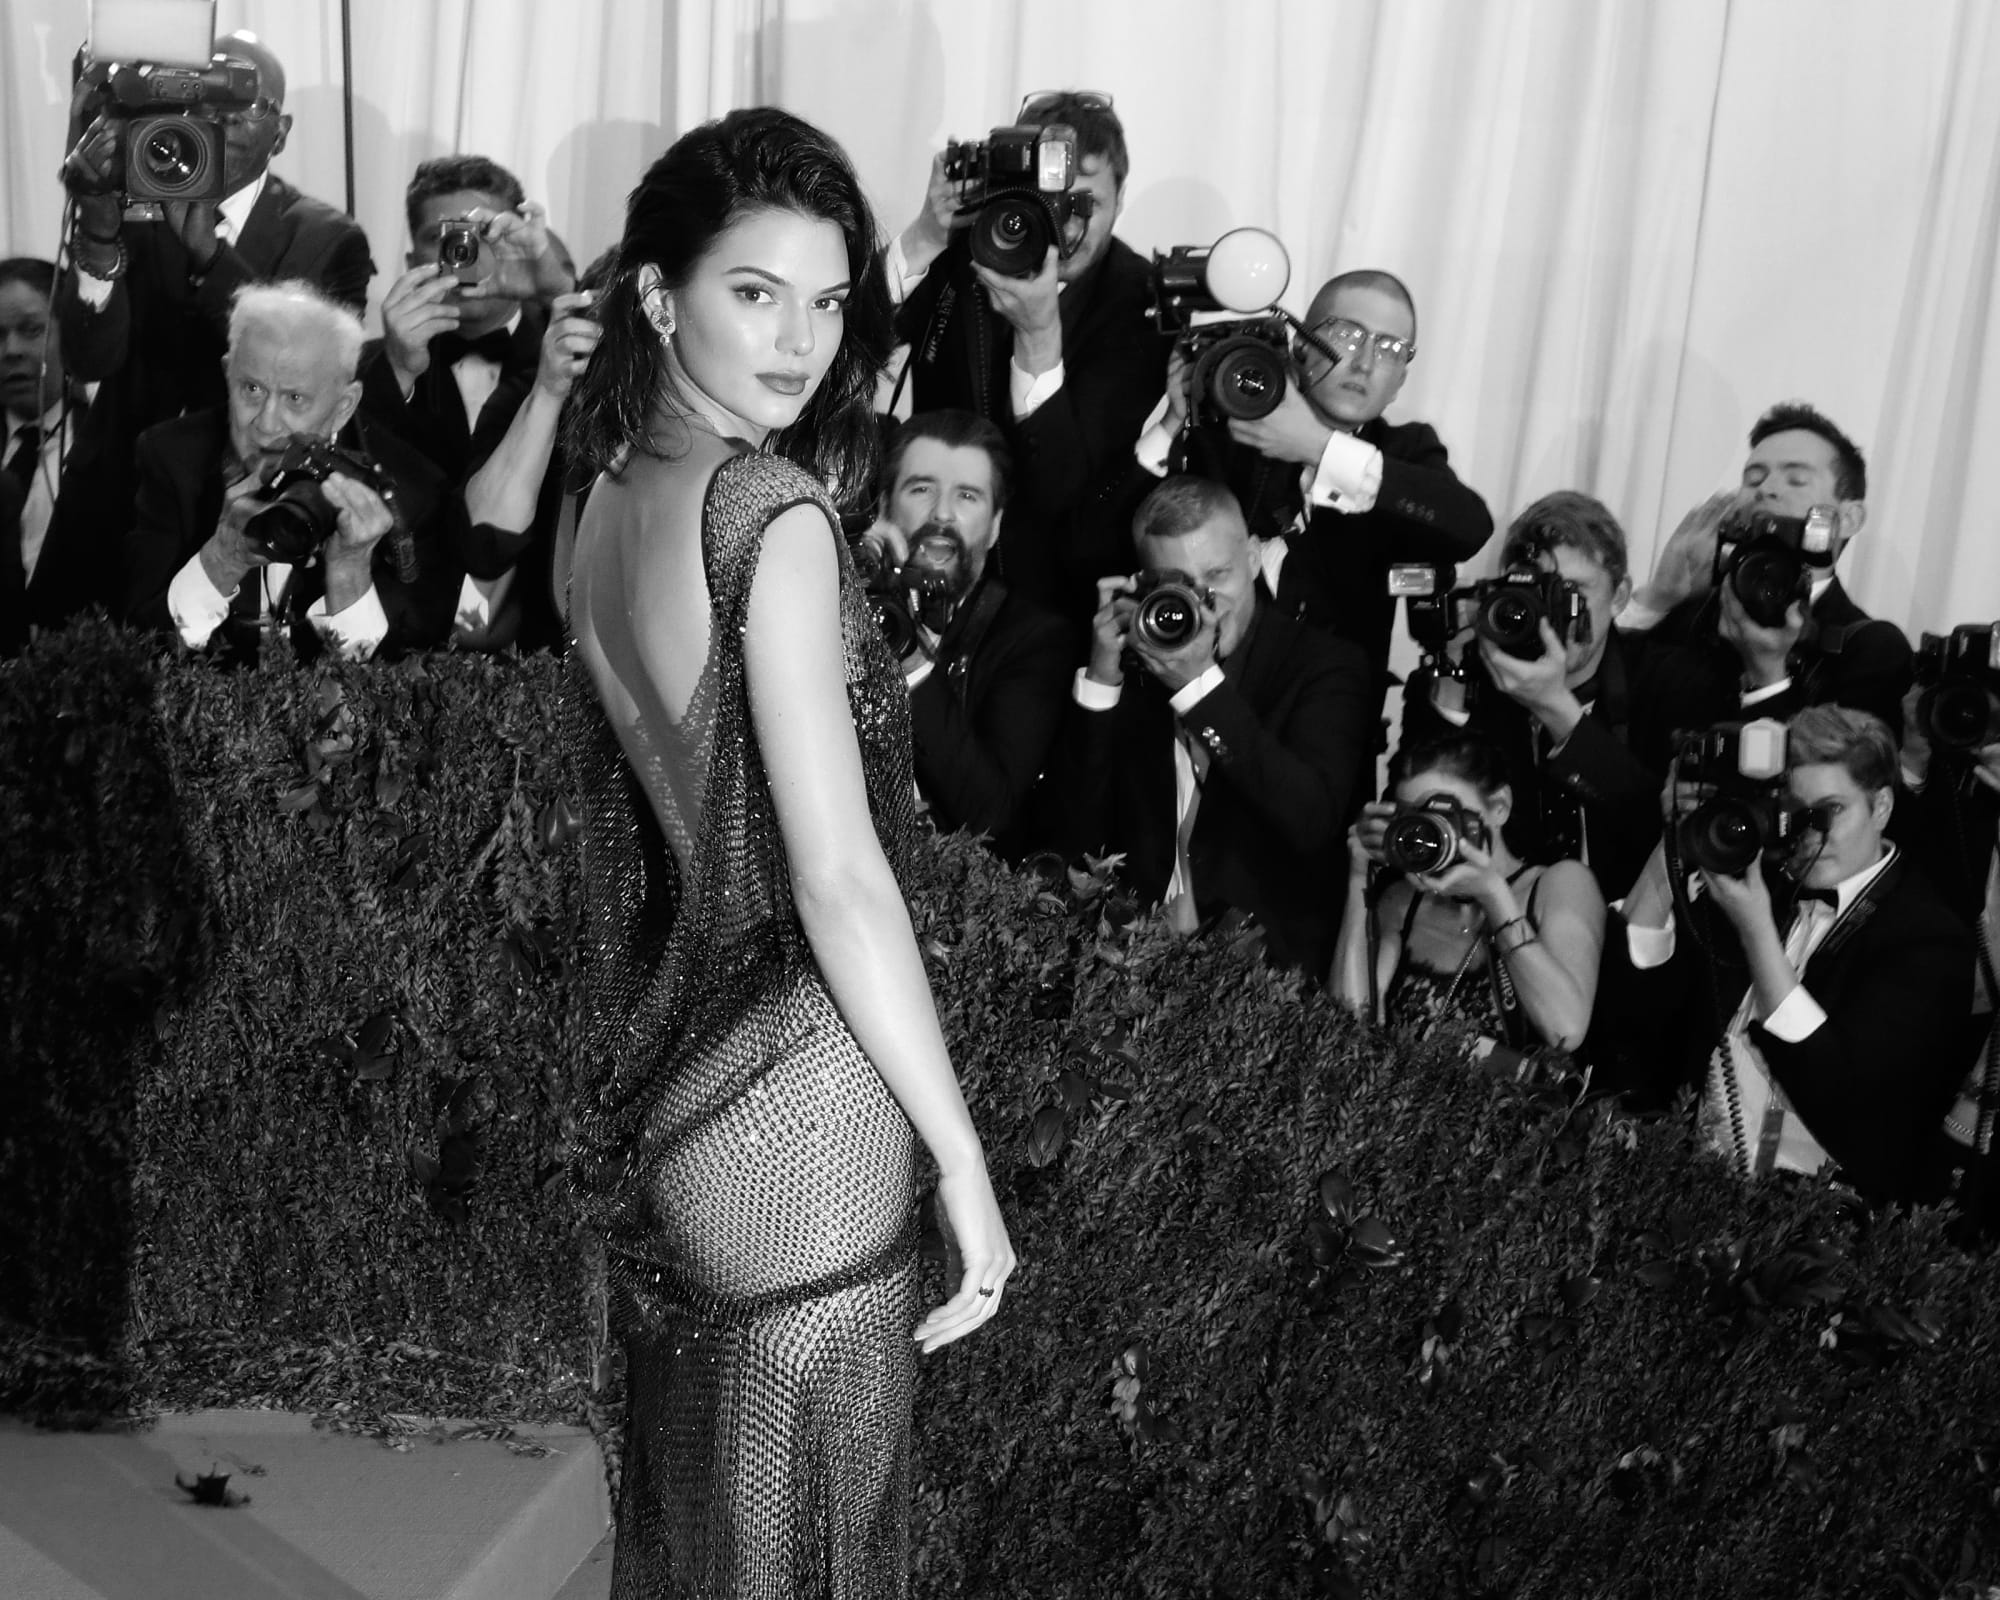 Kendall Jenner poses topless in stunning new Chanel cover shoot